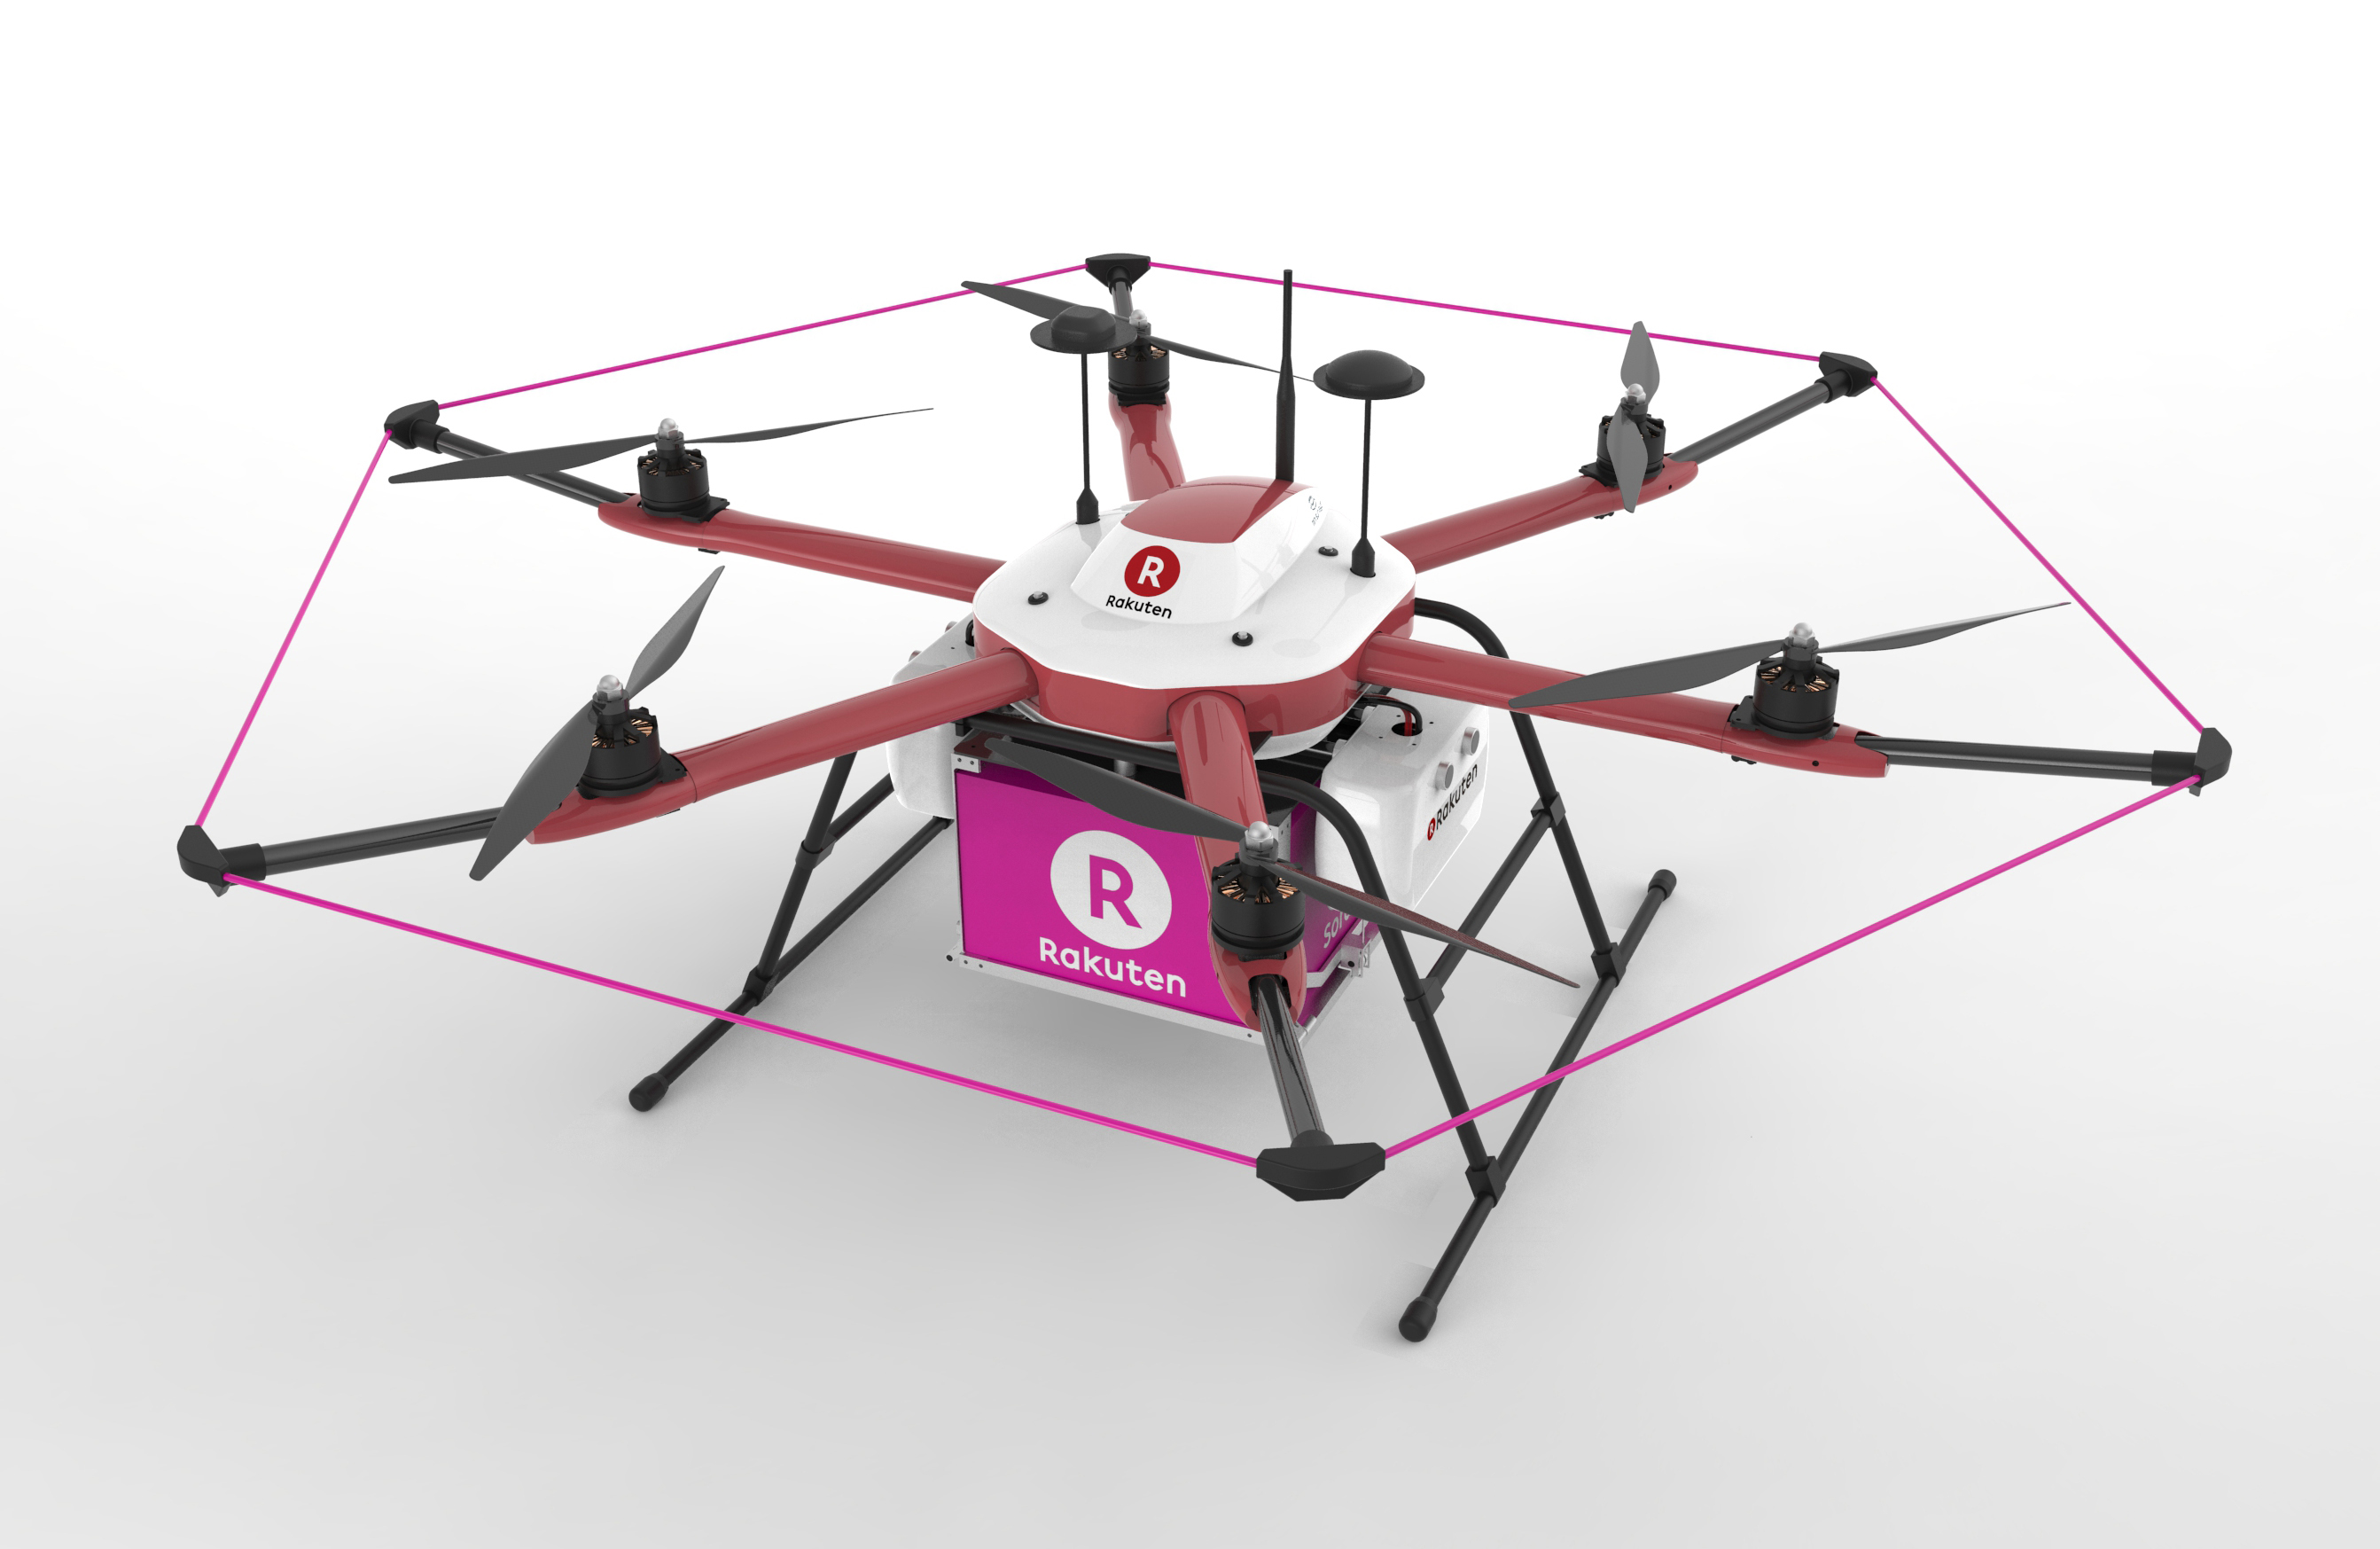 This Drone Will Be Used For Deliveries At A Golf Course In Chiba Prefecture Where